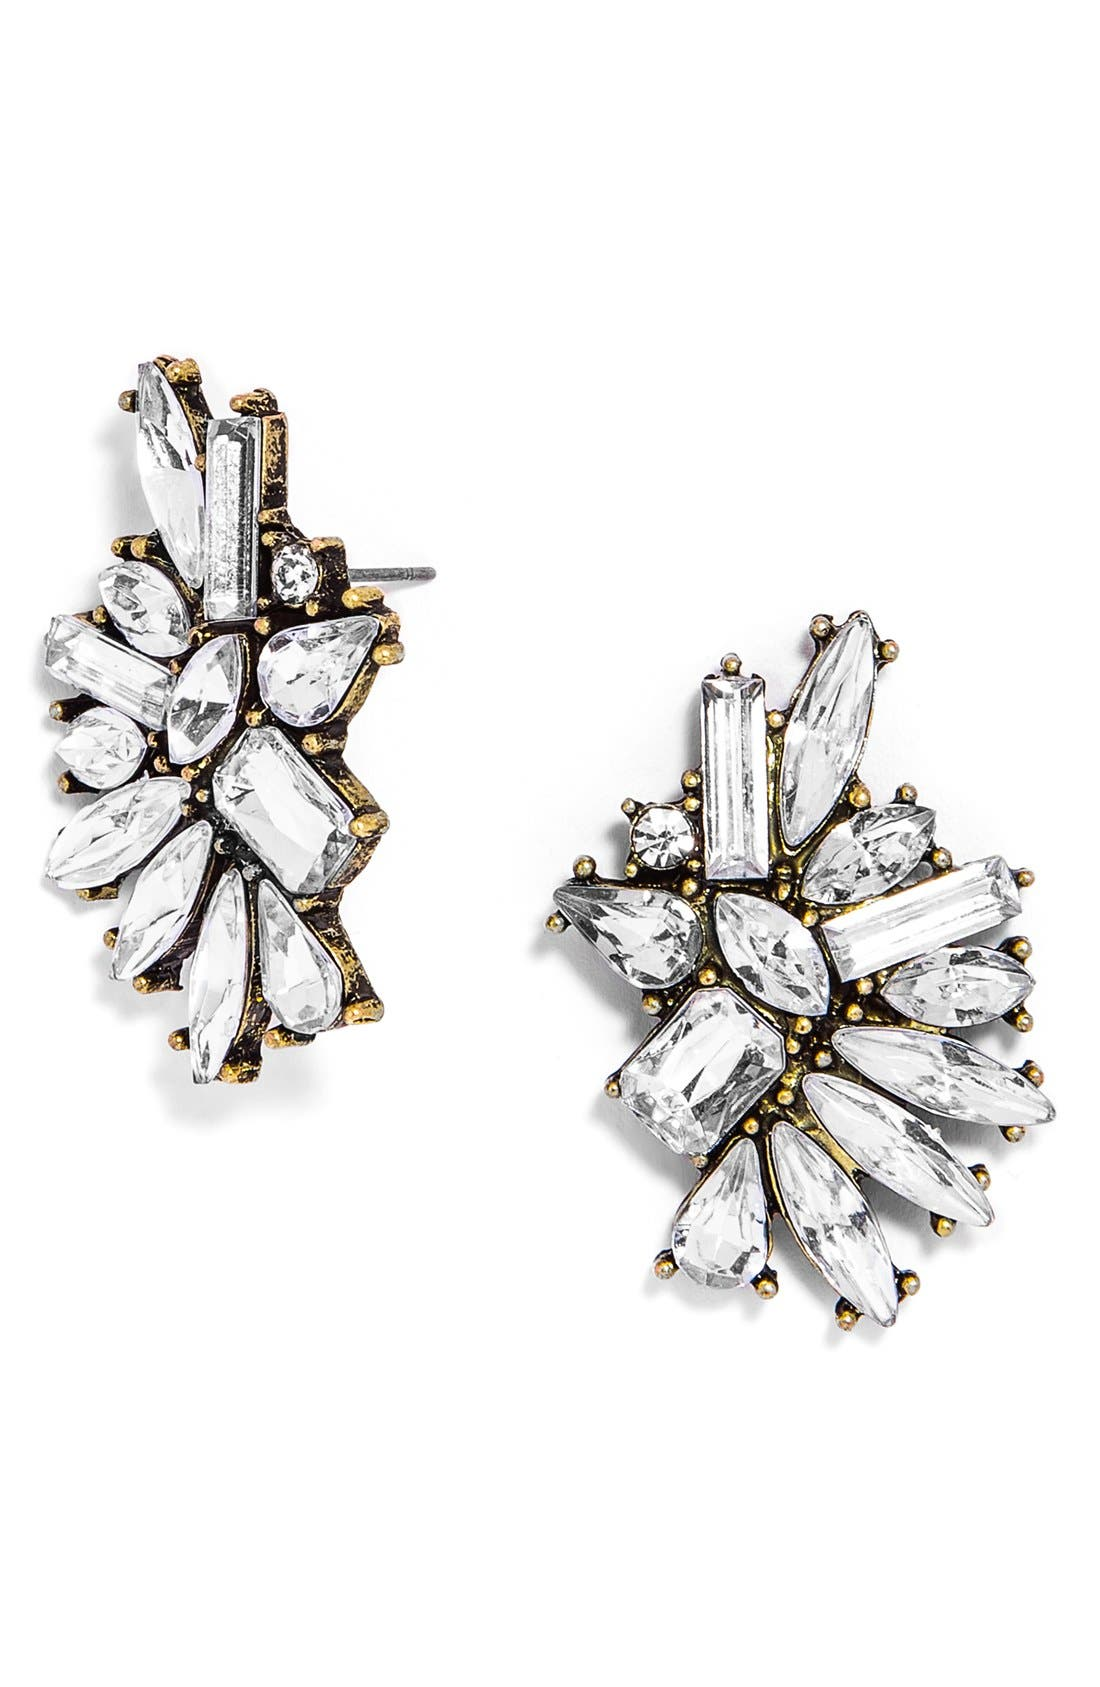 BAUBLEBAR 'Crystal Dolores' Statement Stud Earrings, Main, color, 710